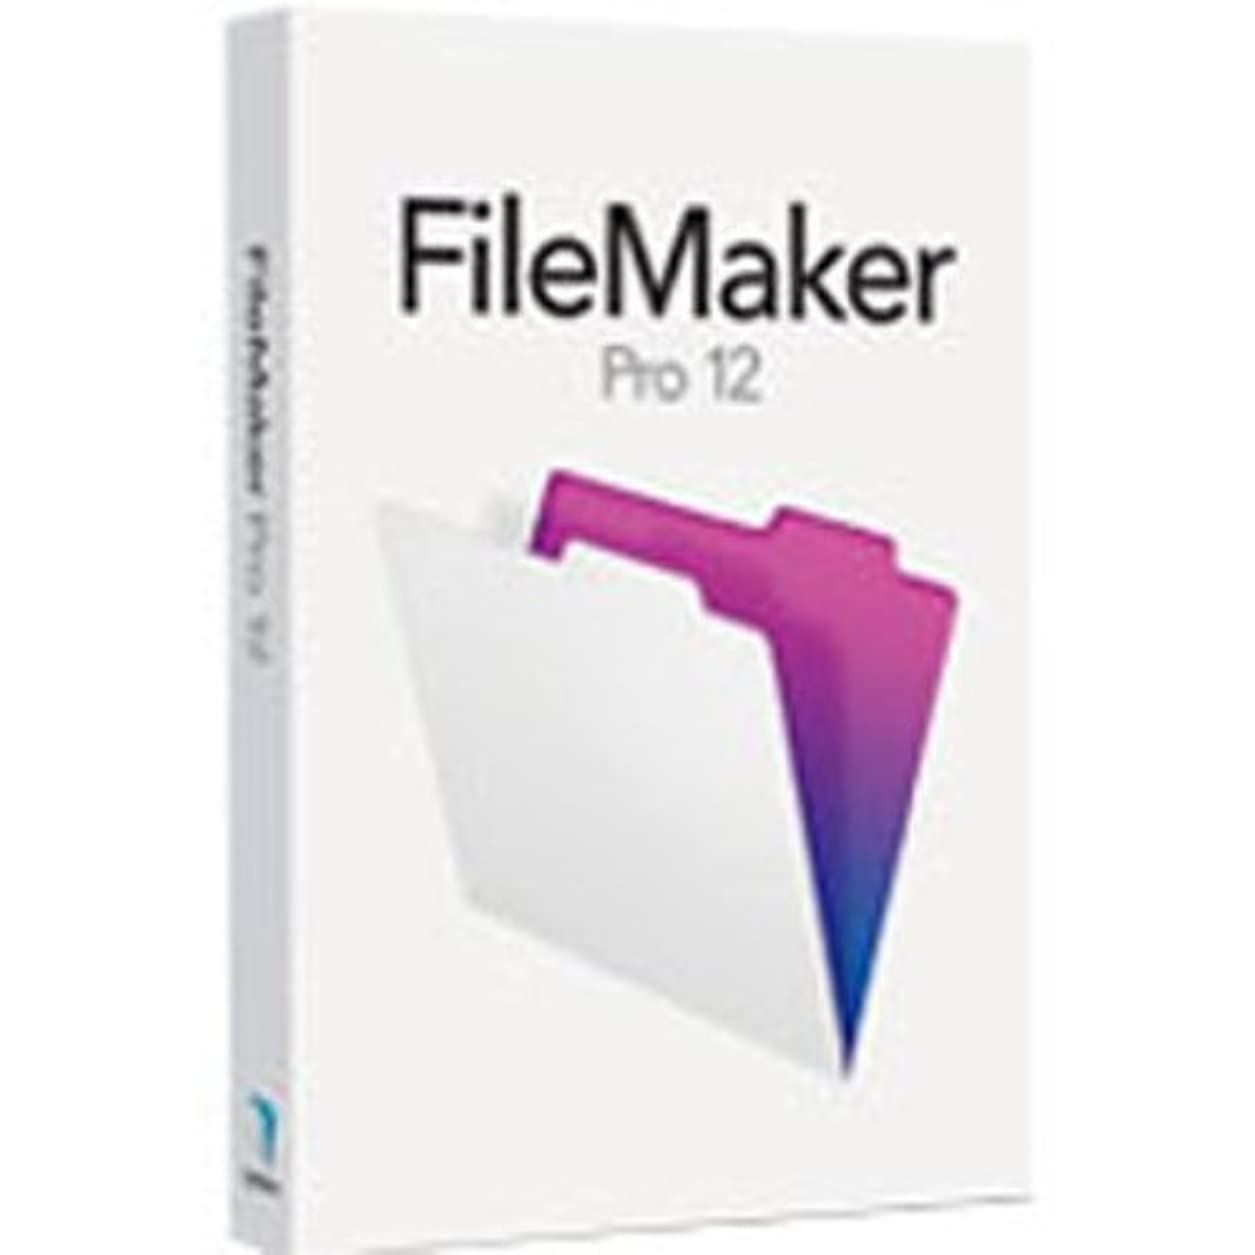 サリー腰有力者FileMaker Pro 12 Single User License Upgrade